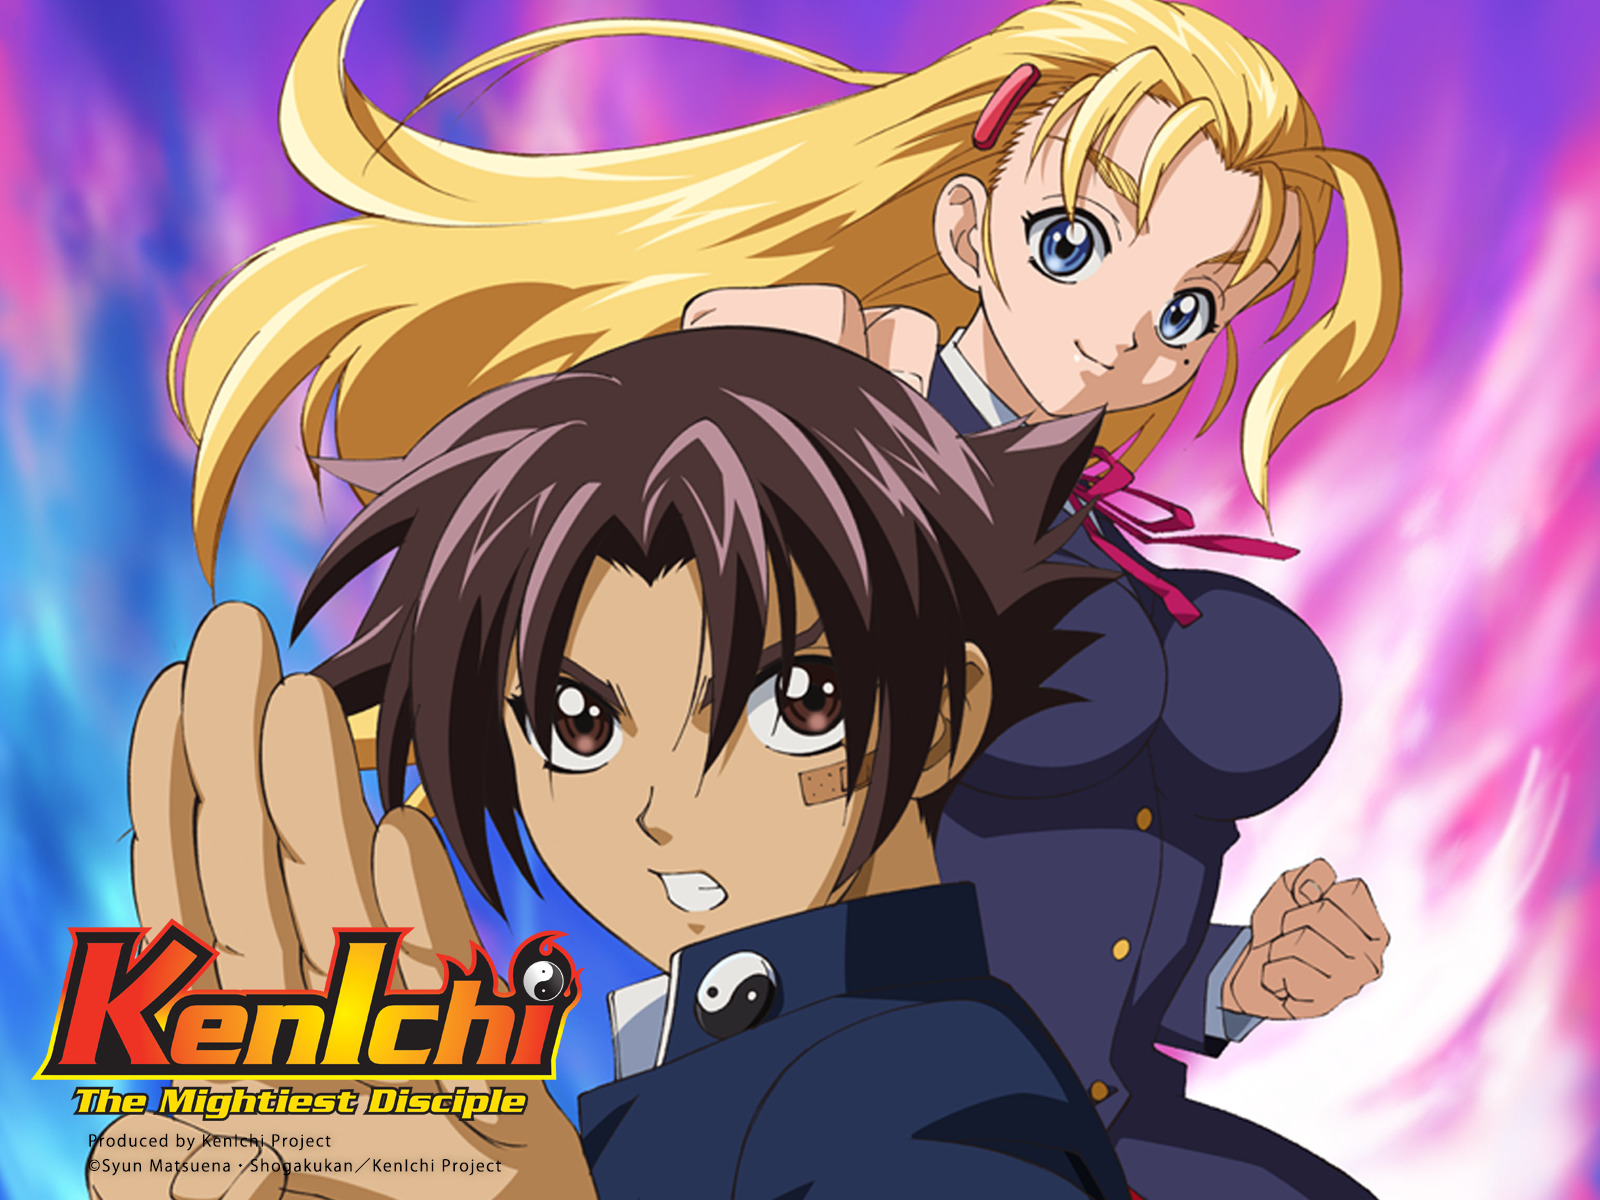 Prime Video Kenichi The Mightiest Disciple English Dub